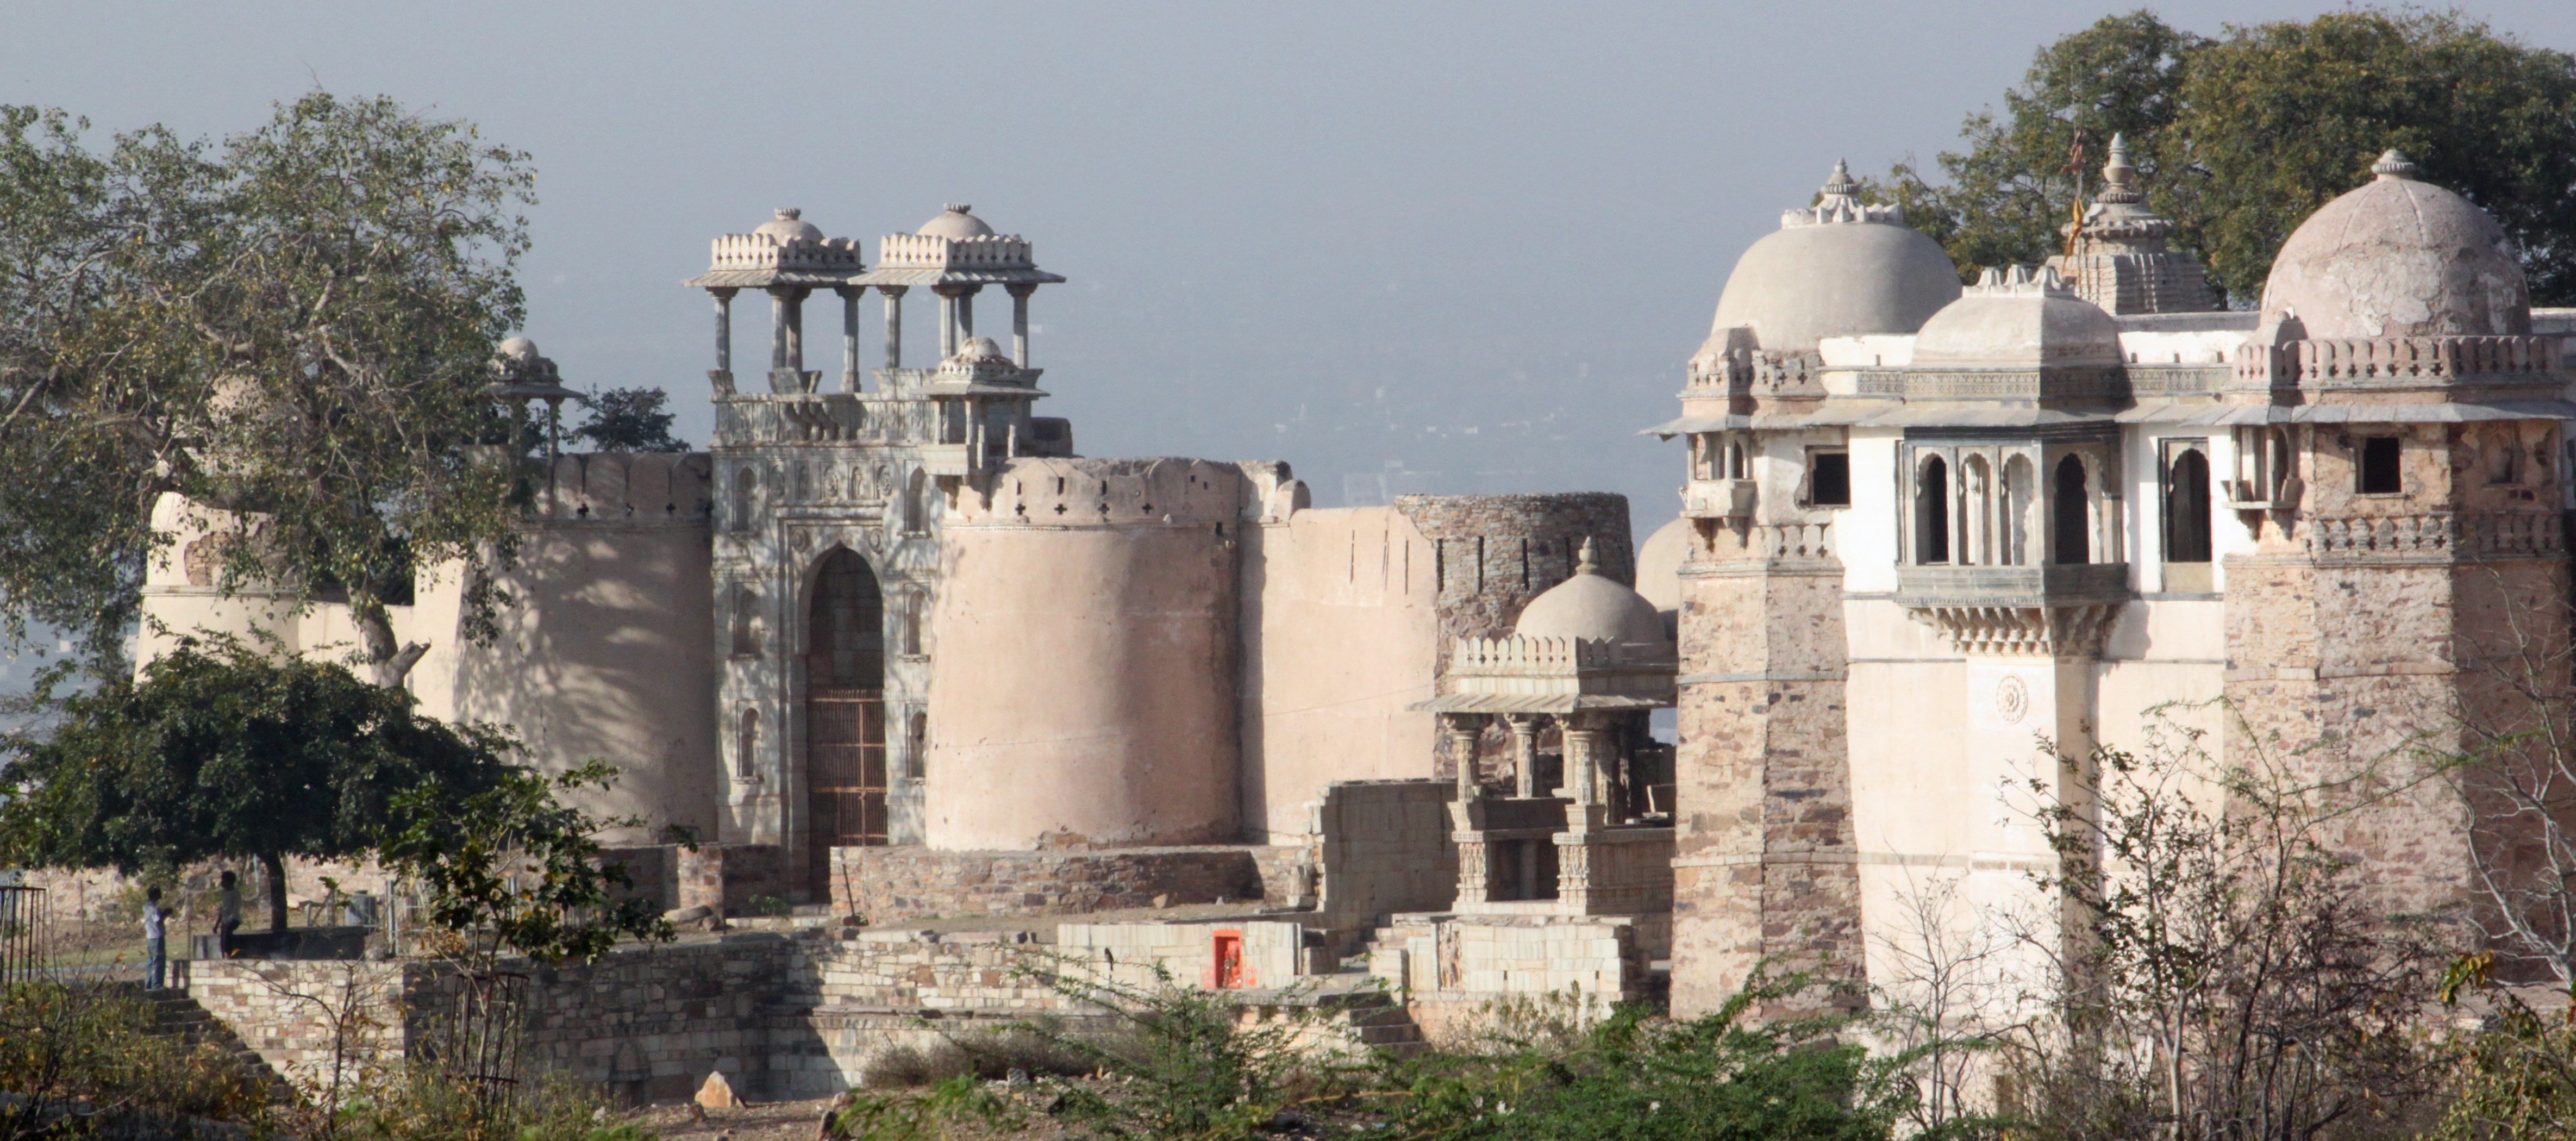 Ratan Singh Palace At Fort Of Chittorgarh Photo Gallery